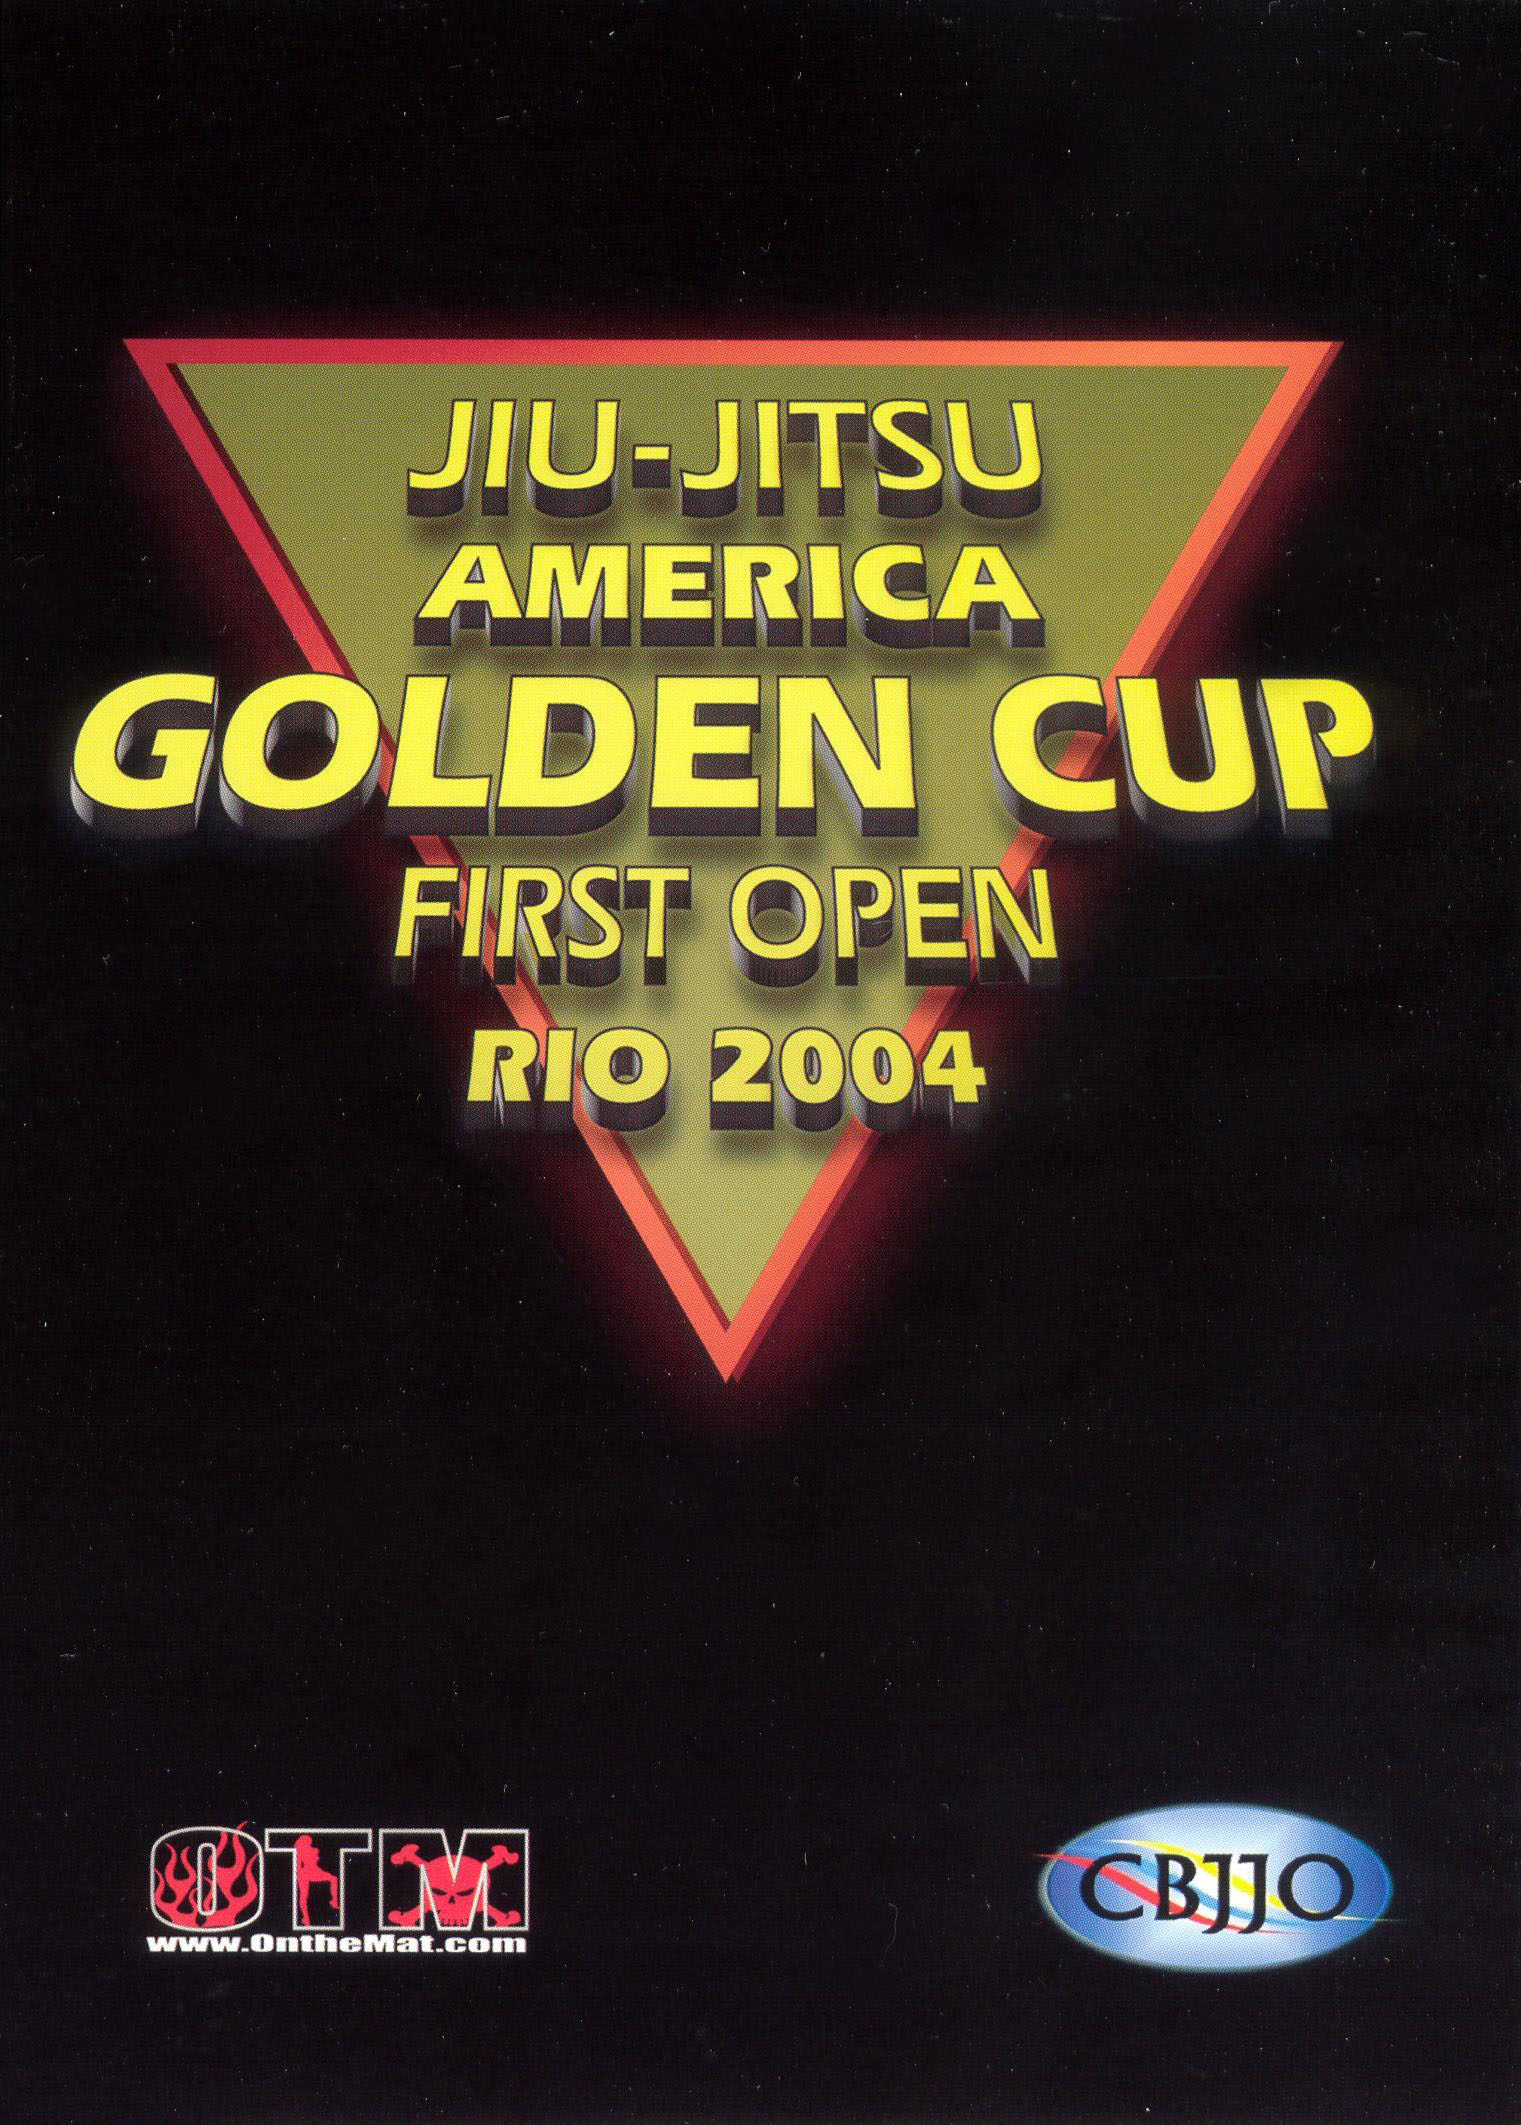 Jiu Jitsu America Golden Cup: First Open Rio 2004